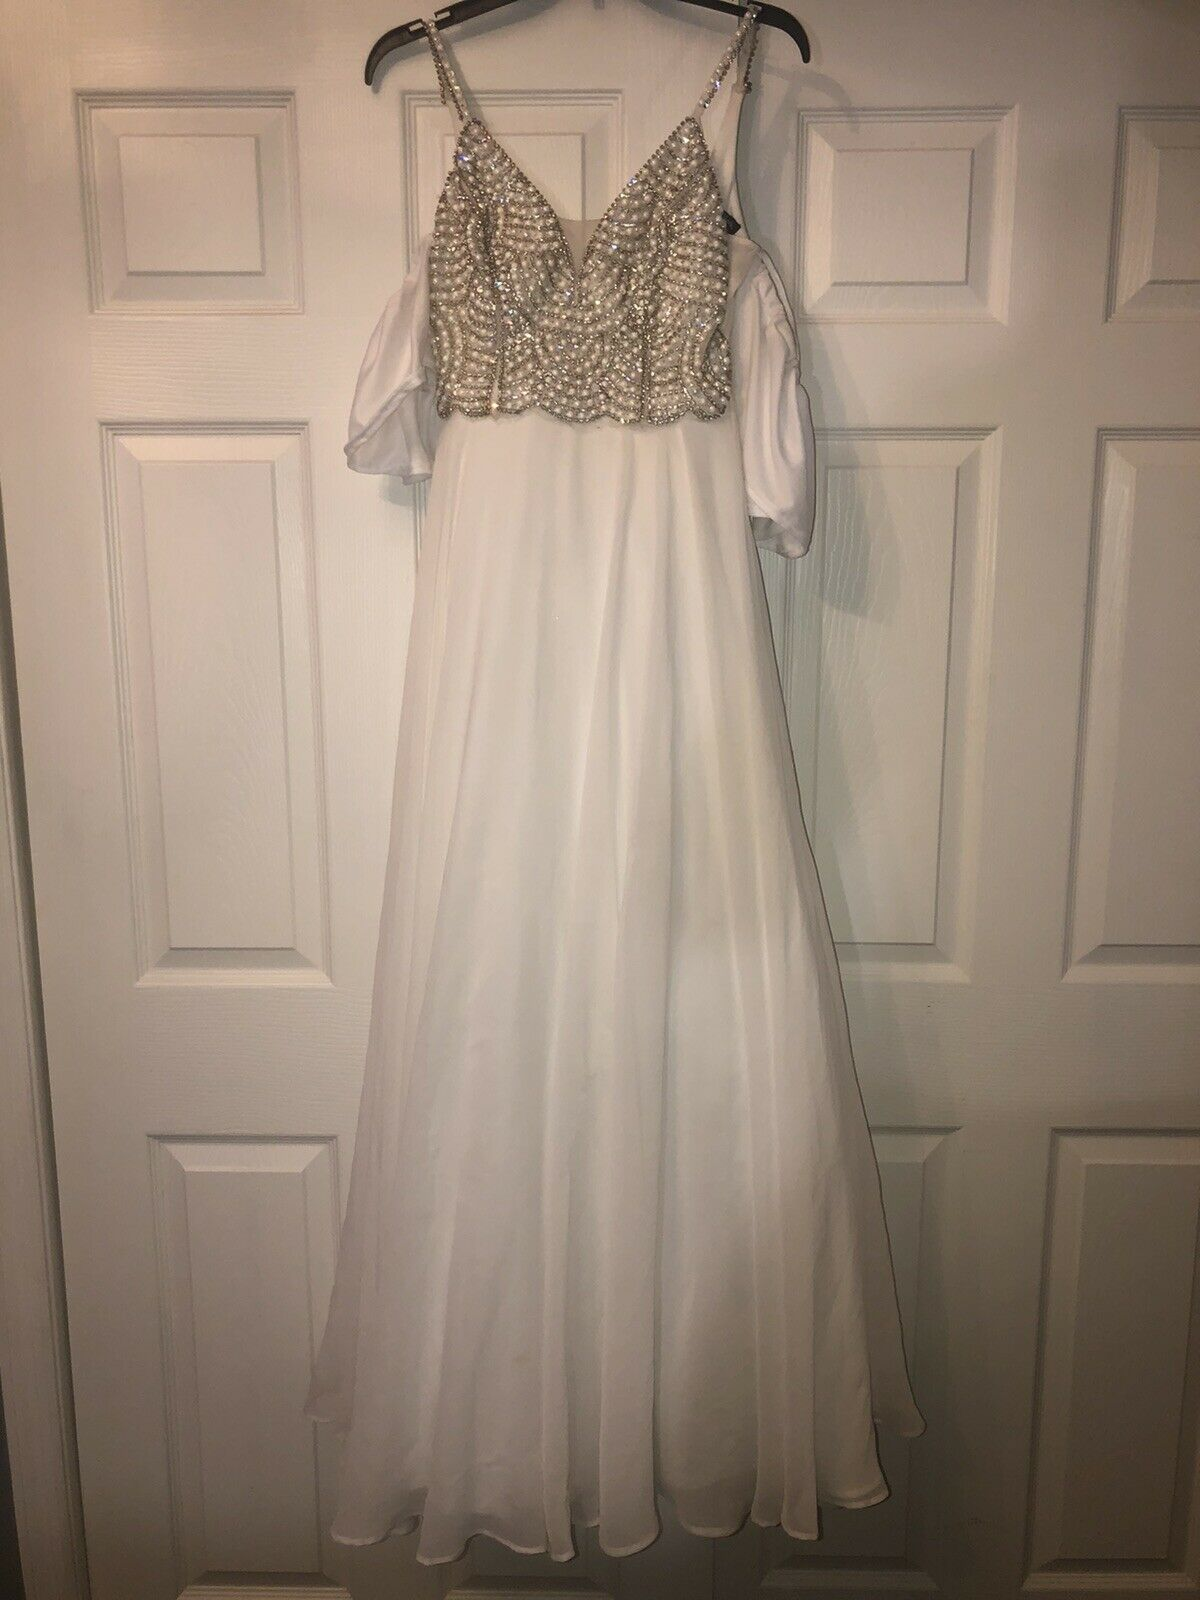 White pearl ball gown - image 3